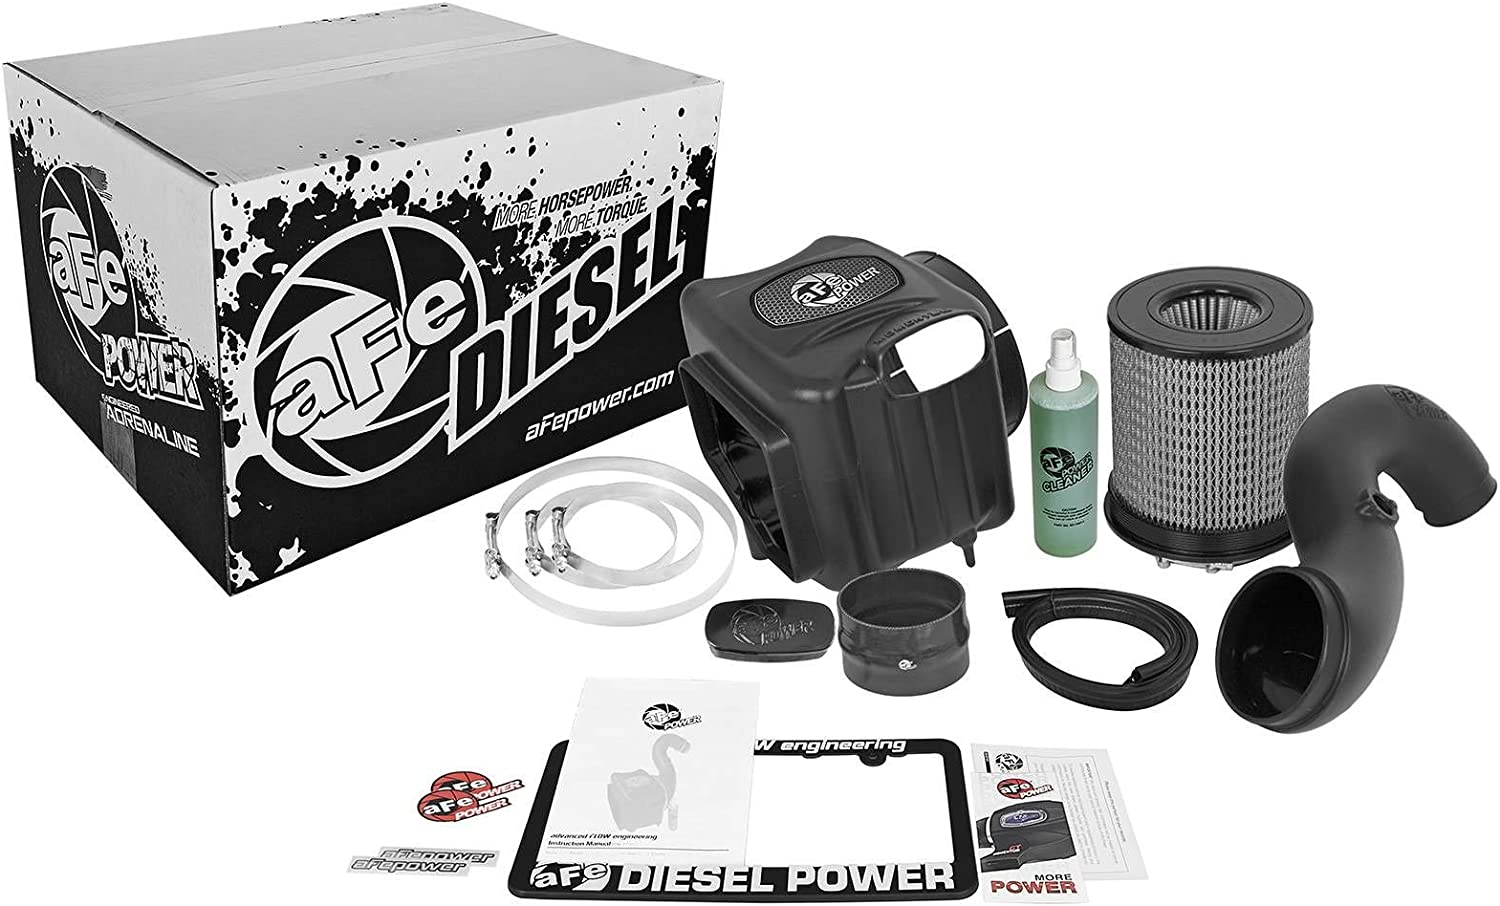 aFe Power Advance Flow Engineering 51-74003-E Air Intake